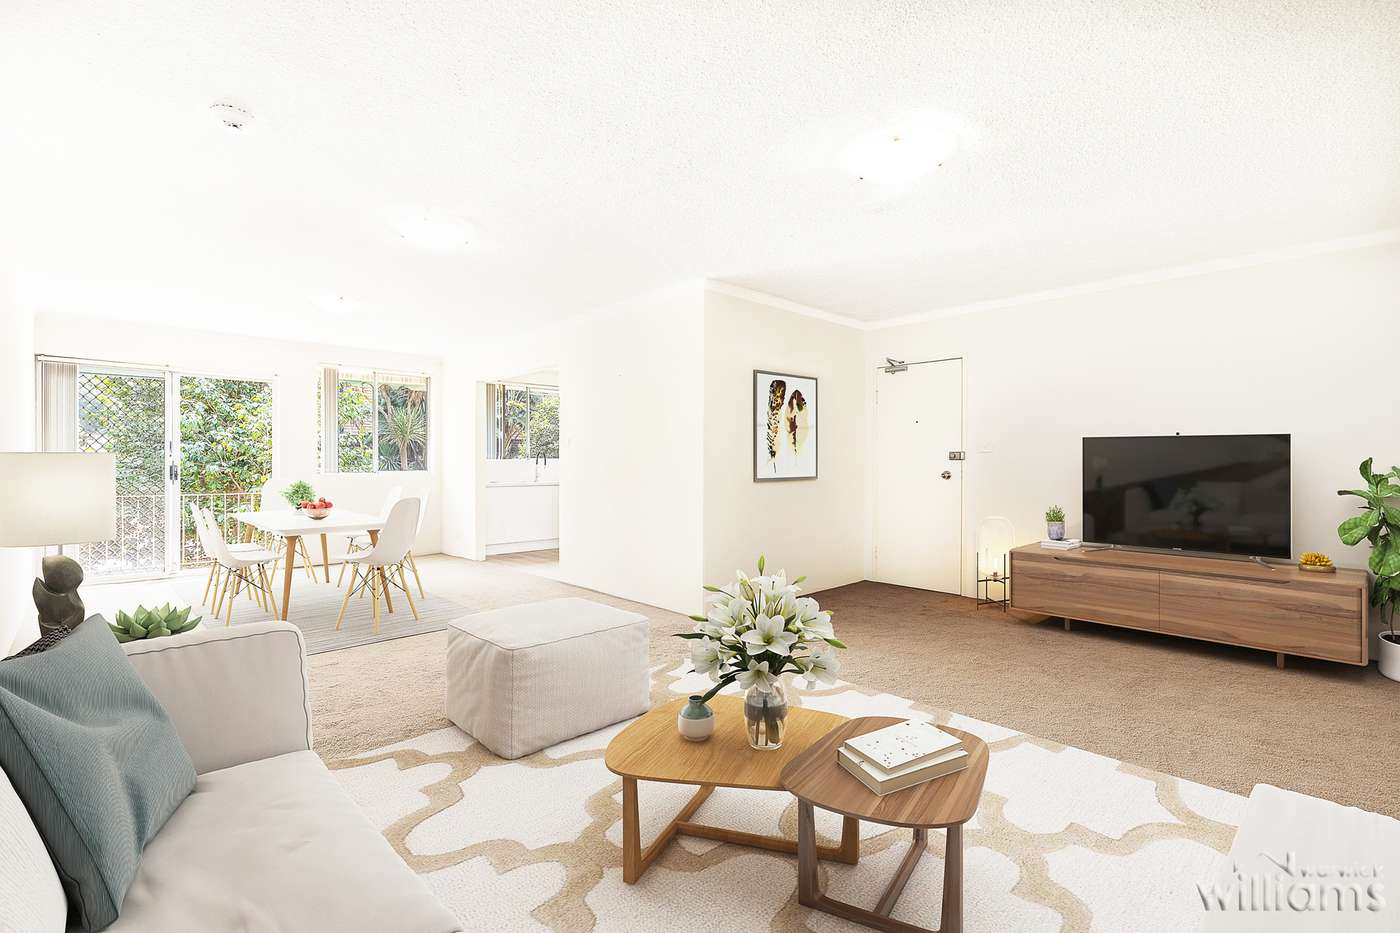 Main view of Homely apartment listing, 20/1304 Pacific Highway, Turramurra, NSW 2074